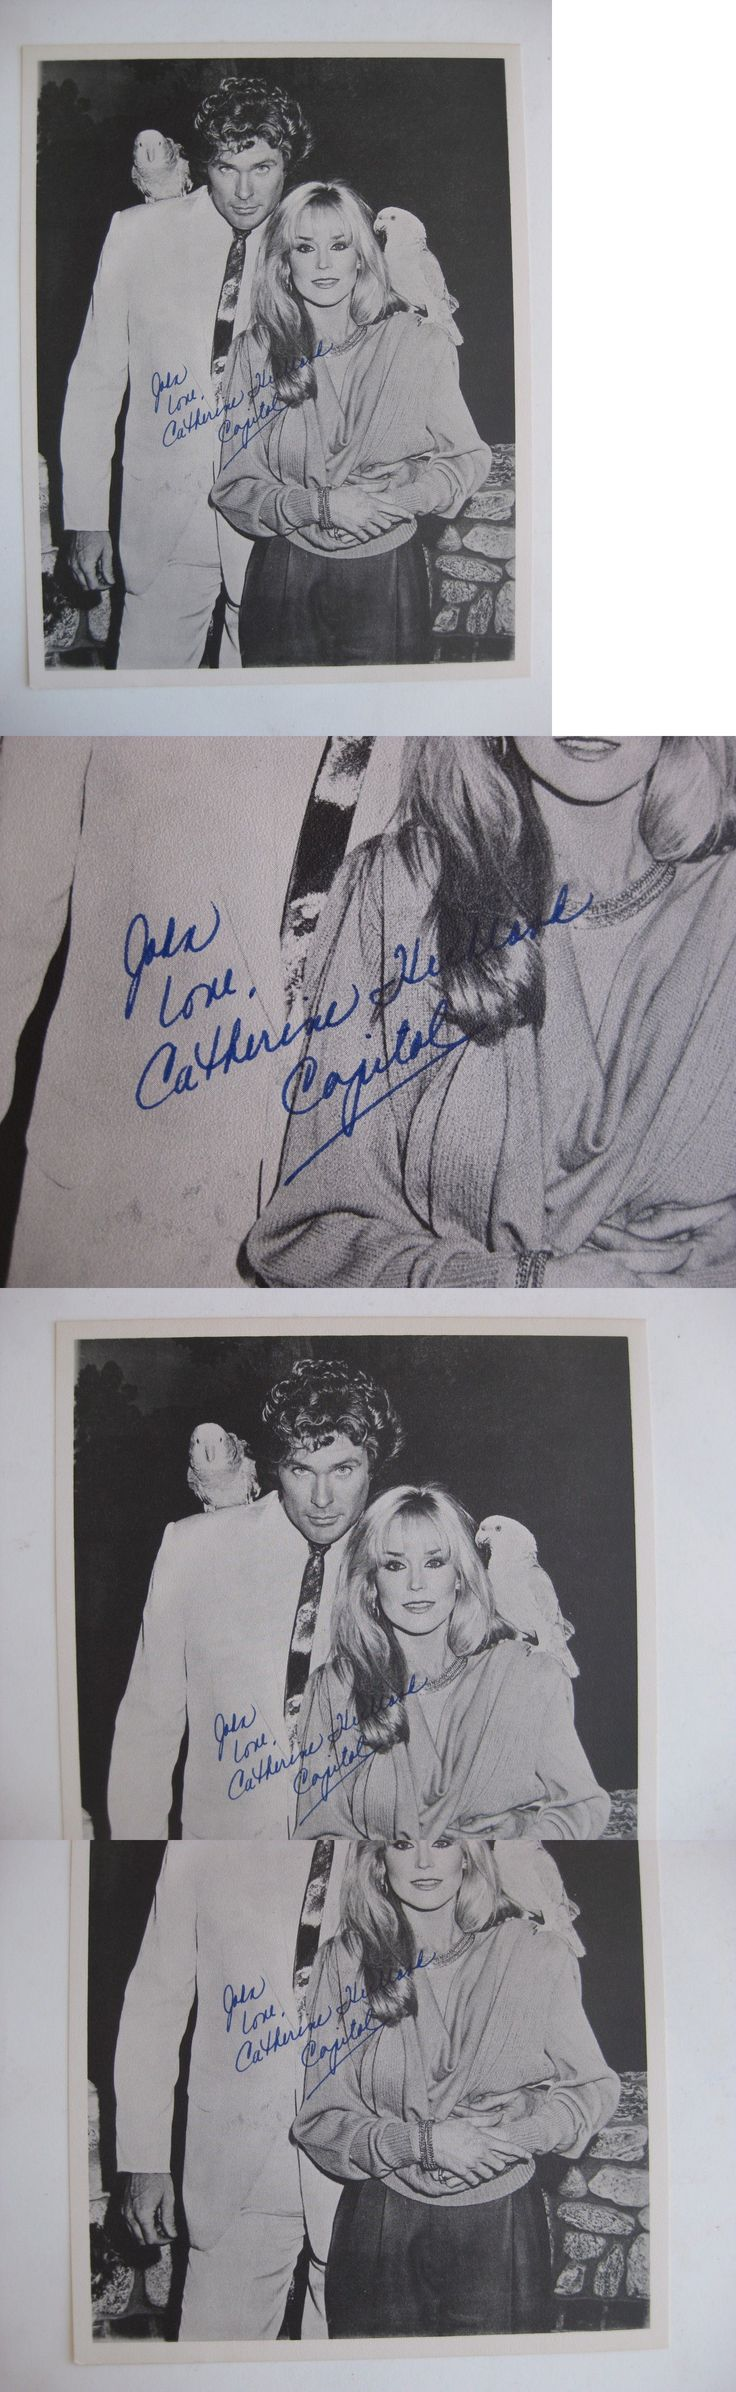 Celebrity Autographs: Vtg Hollywood Stars Film Tv Actress Catherine Hickland Autographed Print Signed -> BUY IT NOW ONLY: $9.99 on eBay!